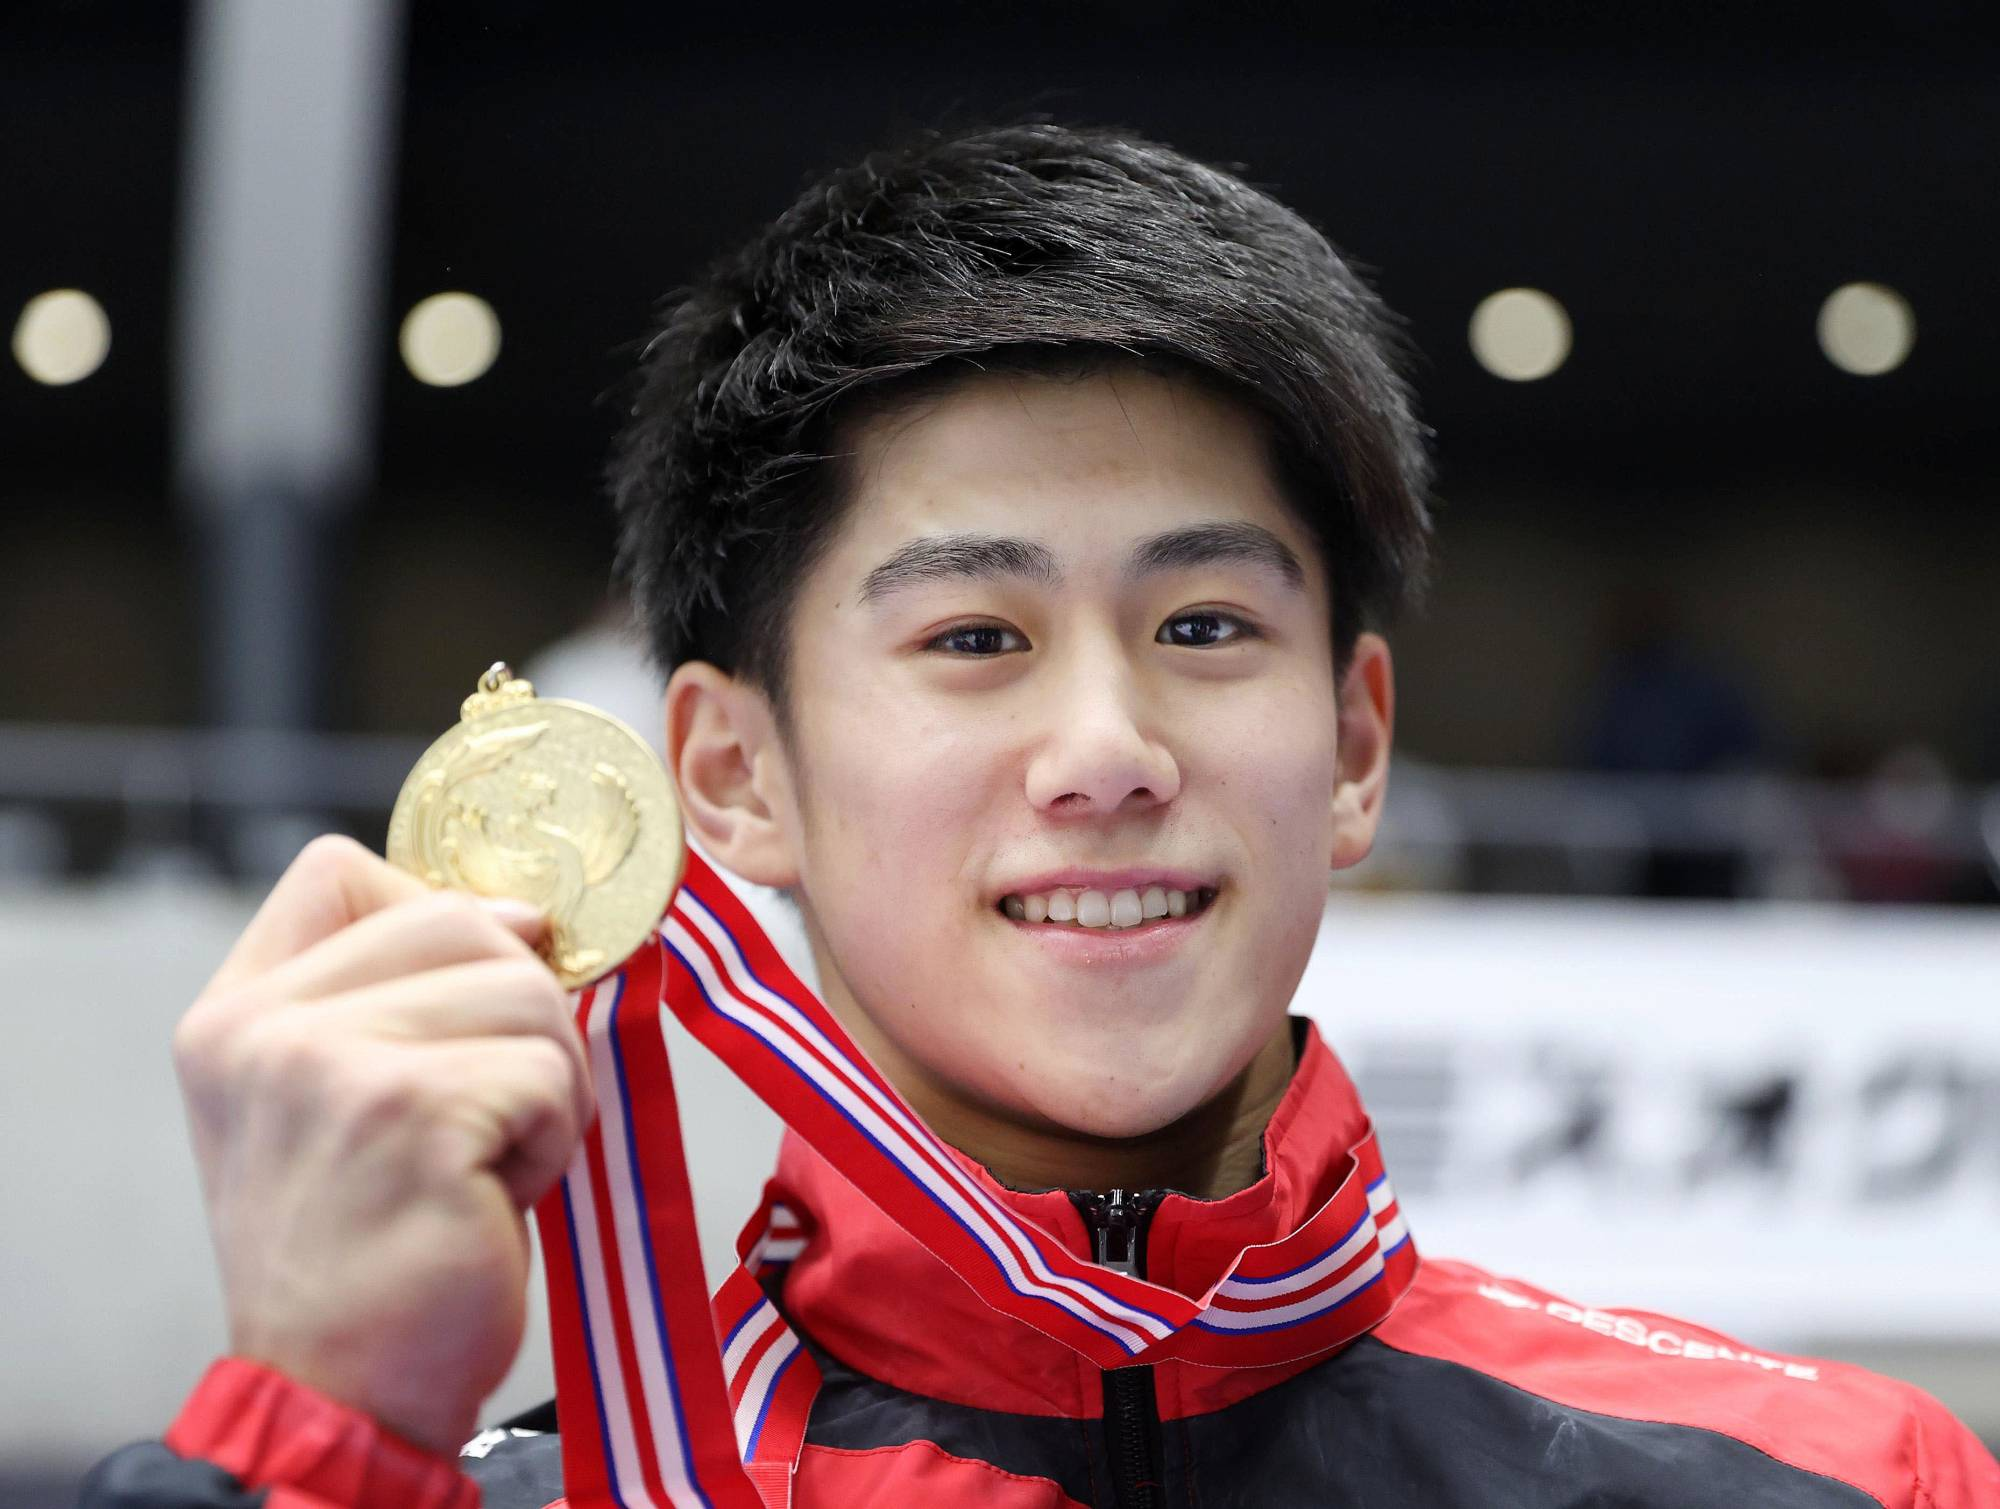 Daiki Hashimoto poses with his medal after winning the men's all-around competition at the national artistic gymnastic championships on Sunday in Takasaki, Gunma Prefecture. | HANDOUT / VIA REUTERS